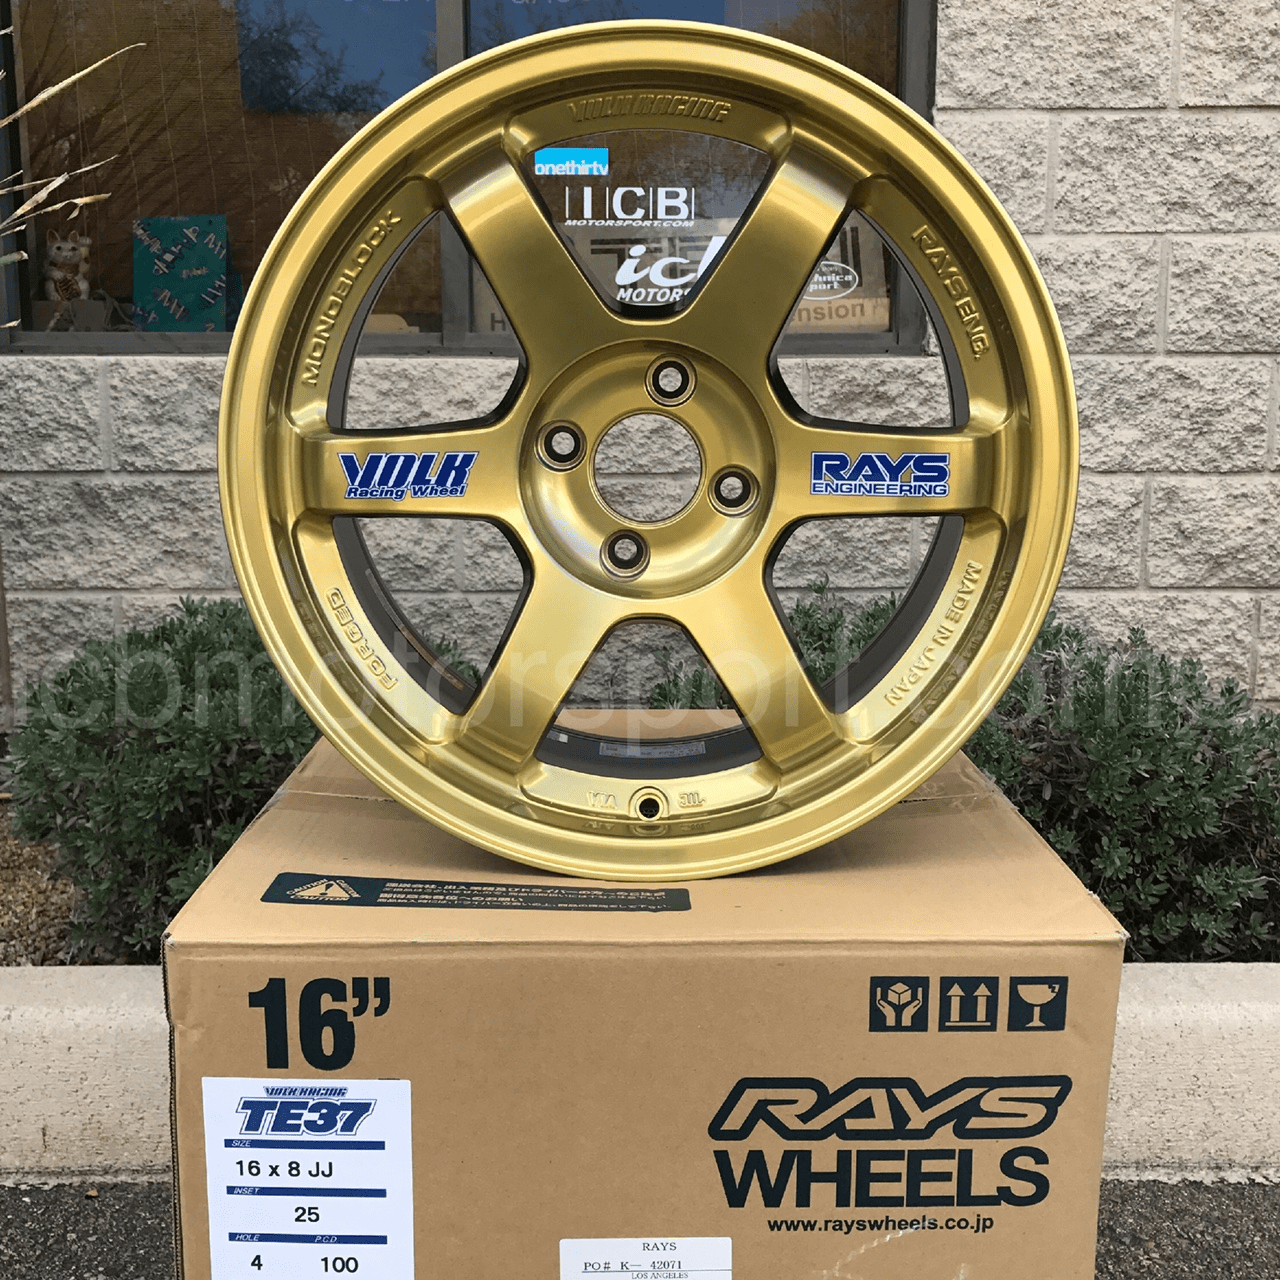 Rays Volk Racing TE37 Wheels 16X8 4X100 +25 Offset Hyper Gold Concave Face Sold